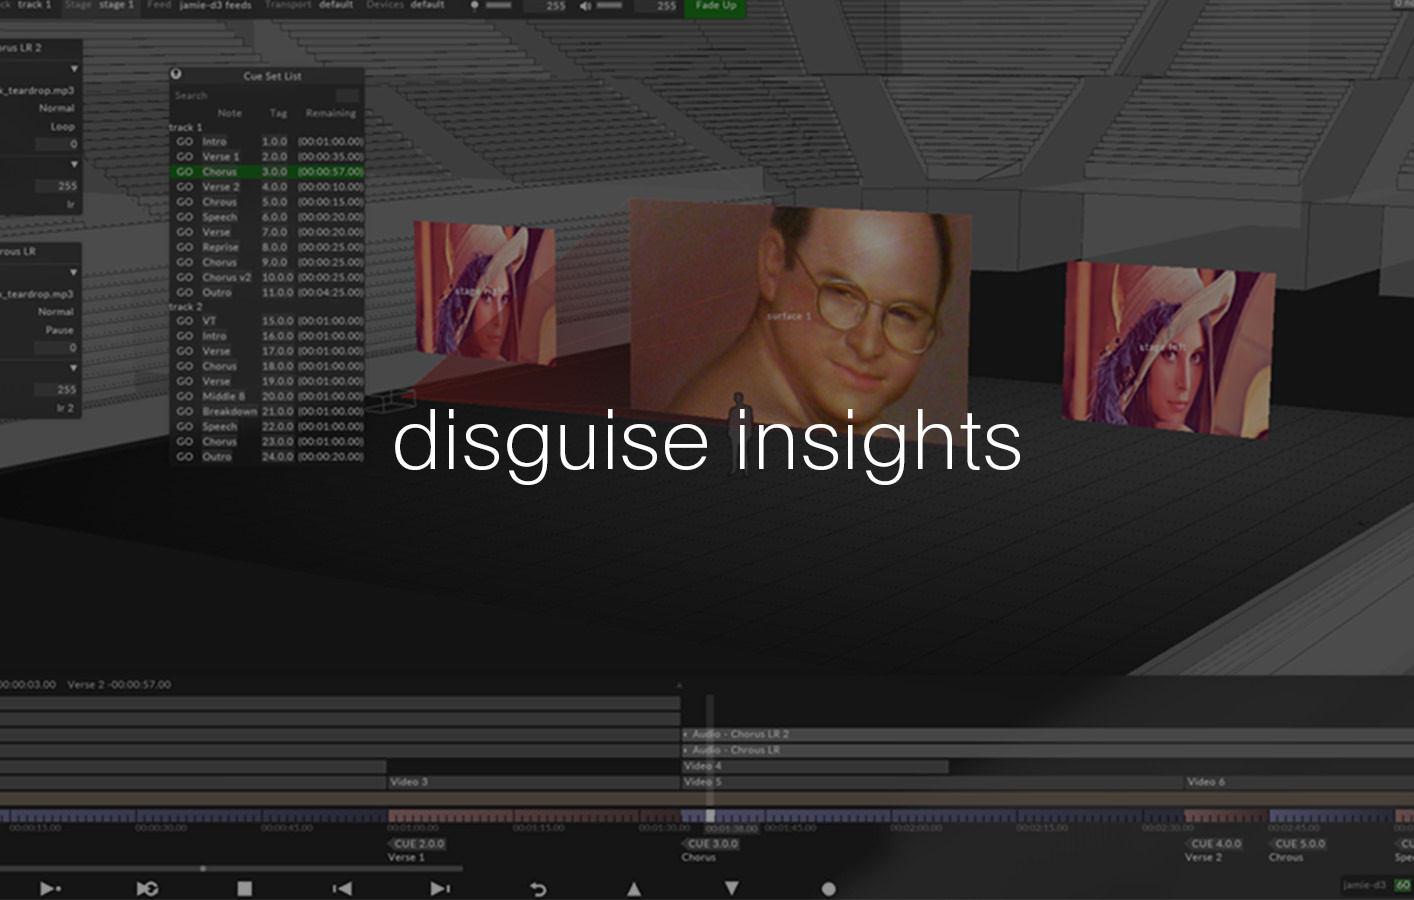 disguise insights - content templates